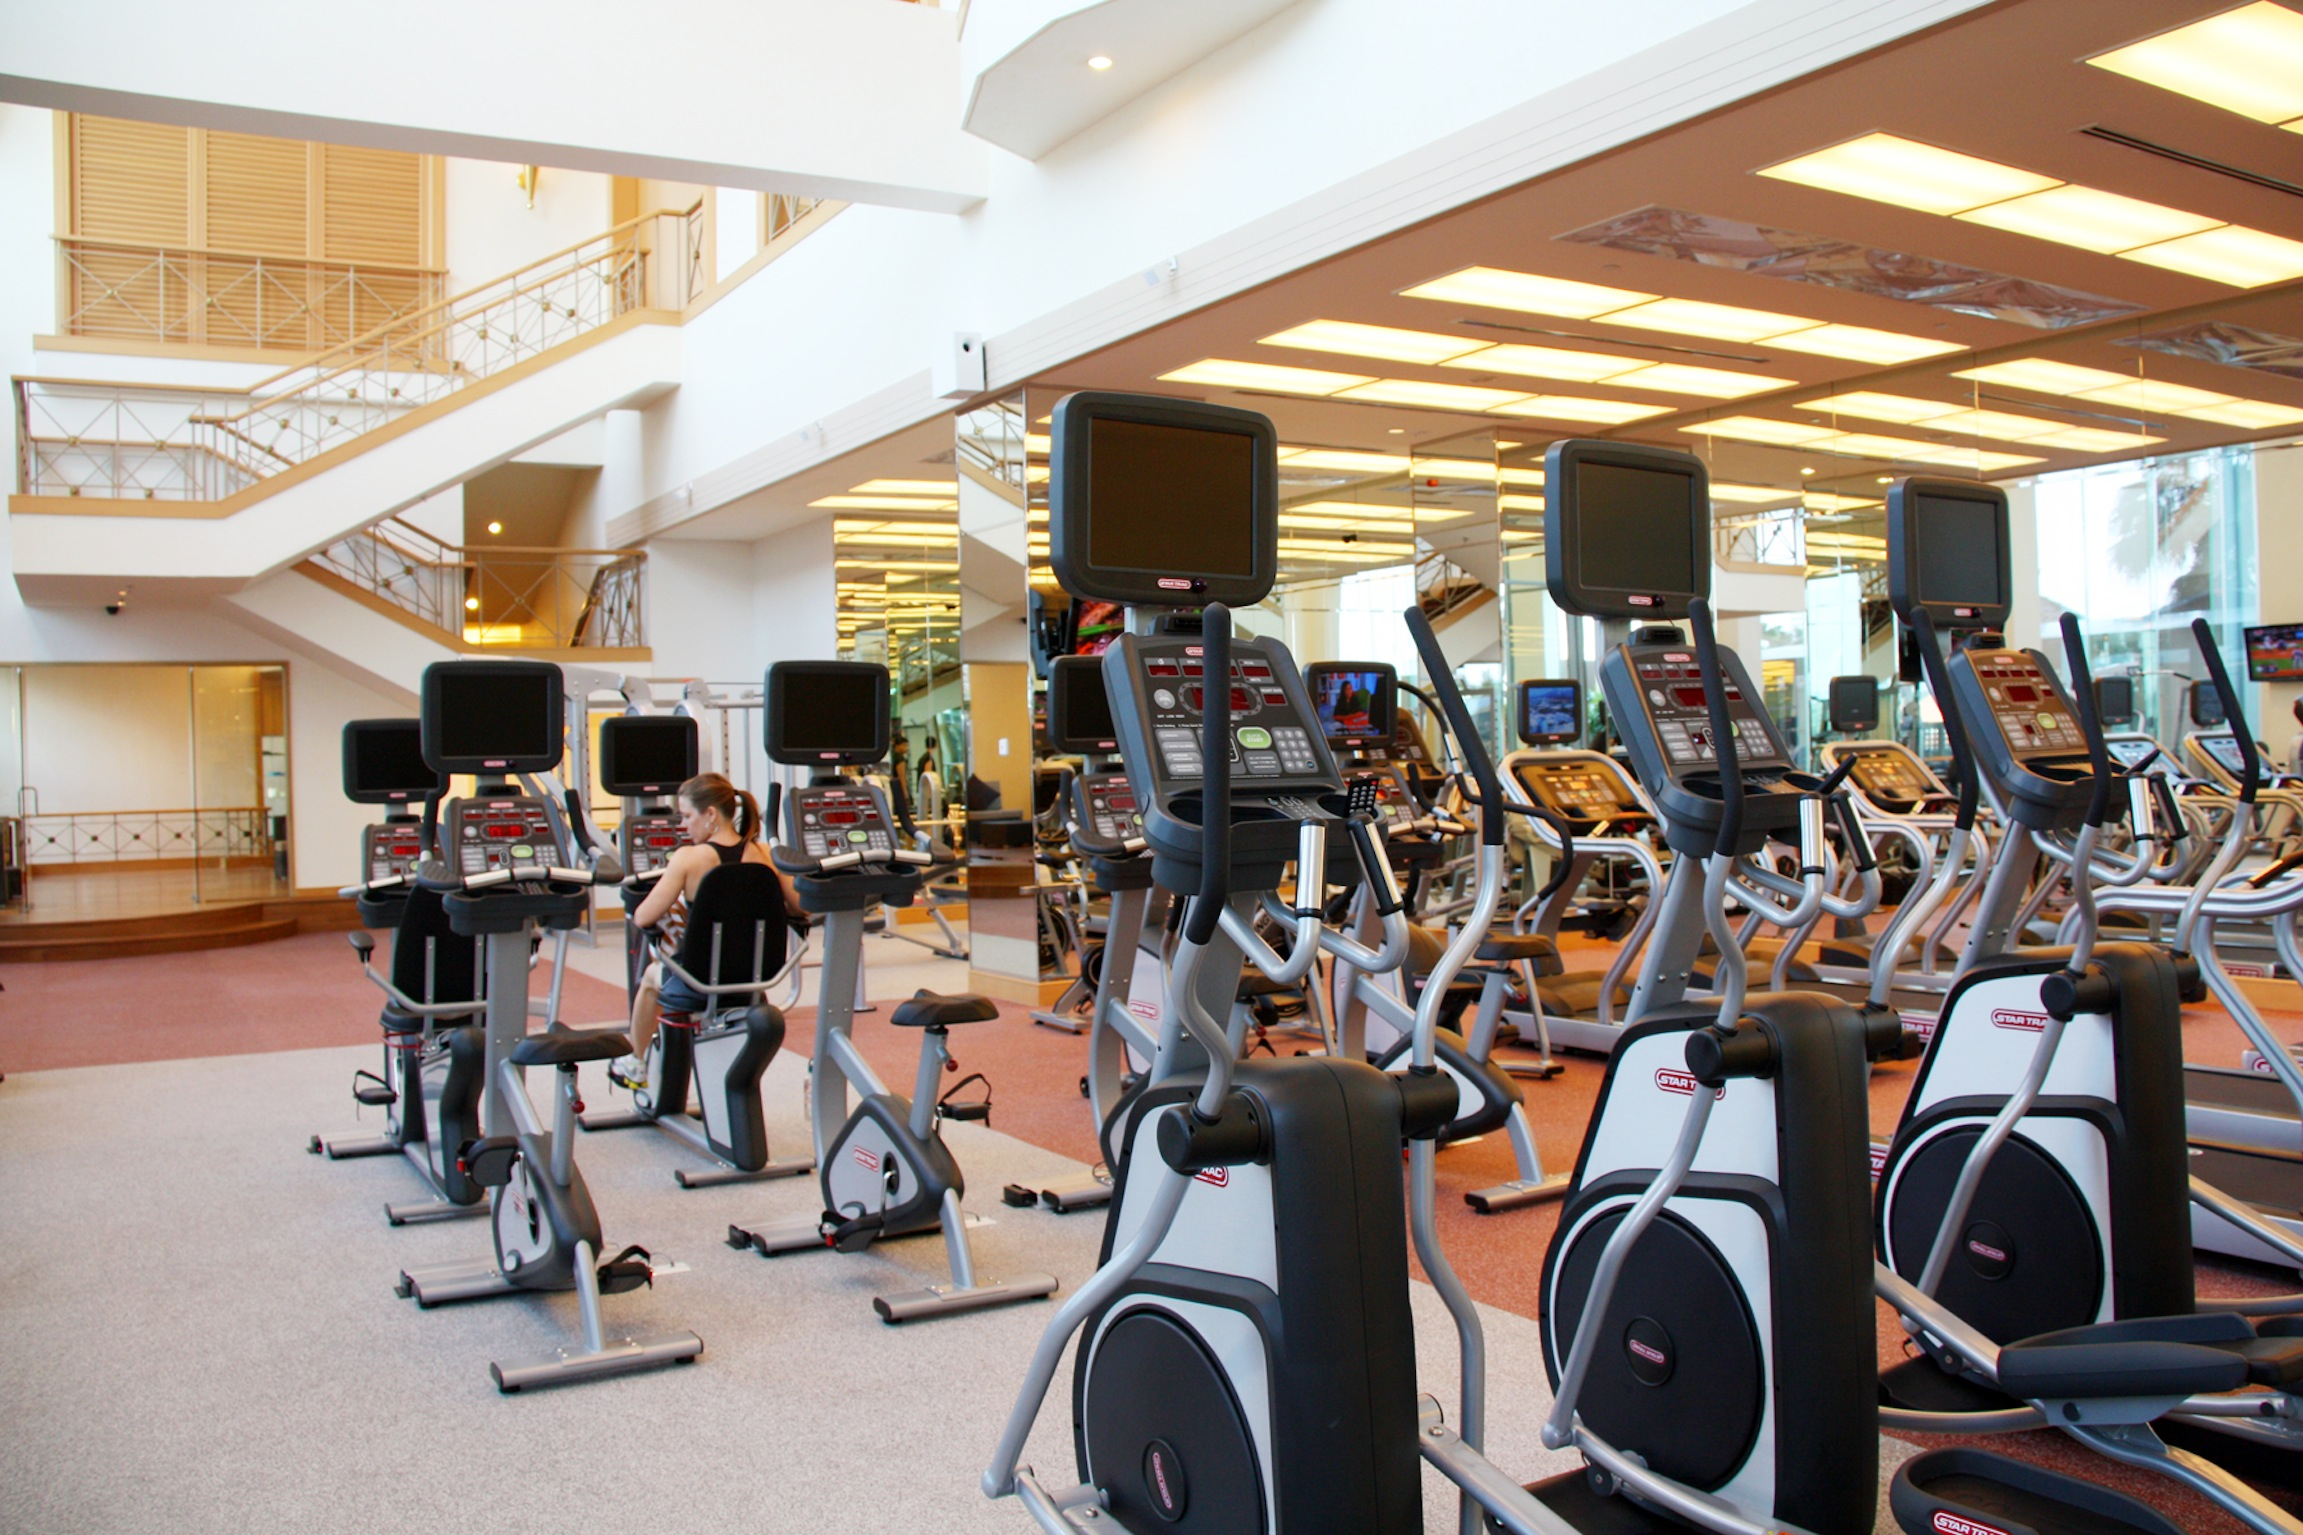 Hilton Kuala Lumpur's Gym & Spa: The Best Place For A Healthy Lifestyle